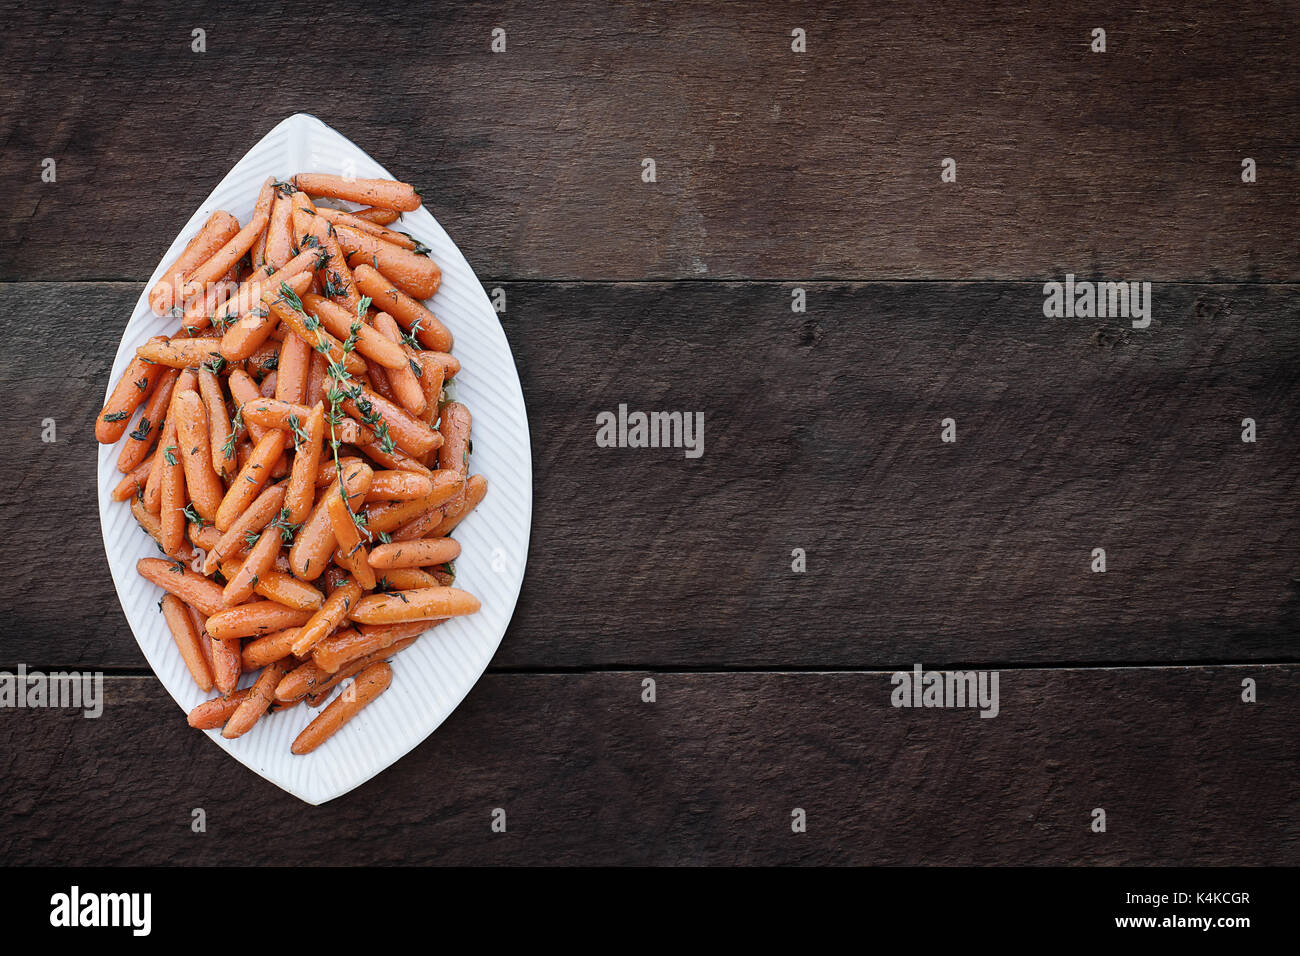 Honey Glazed Baby carrots and old wooden spoon. Image shot from above in flatlay style. - Stock Image